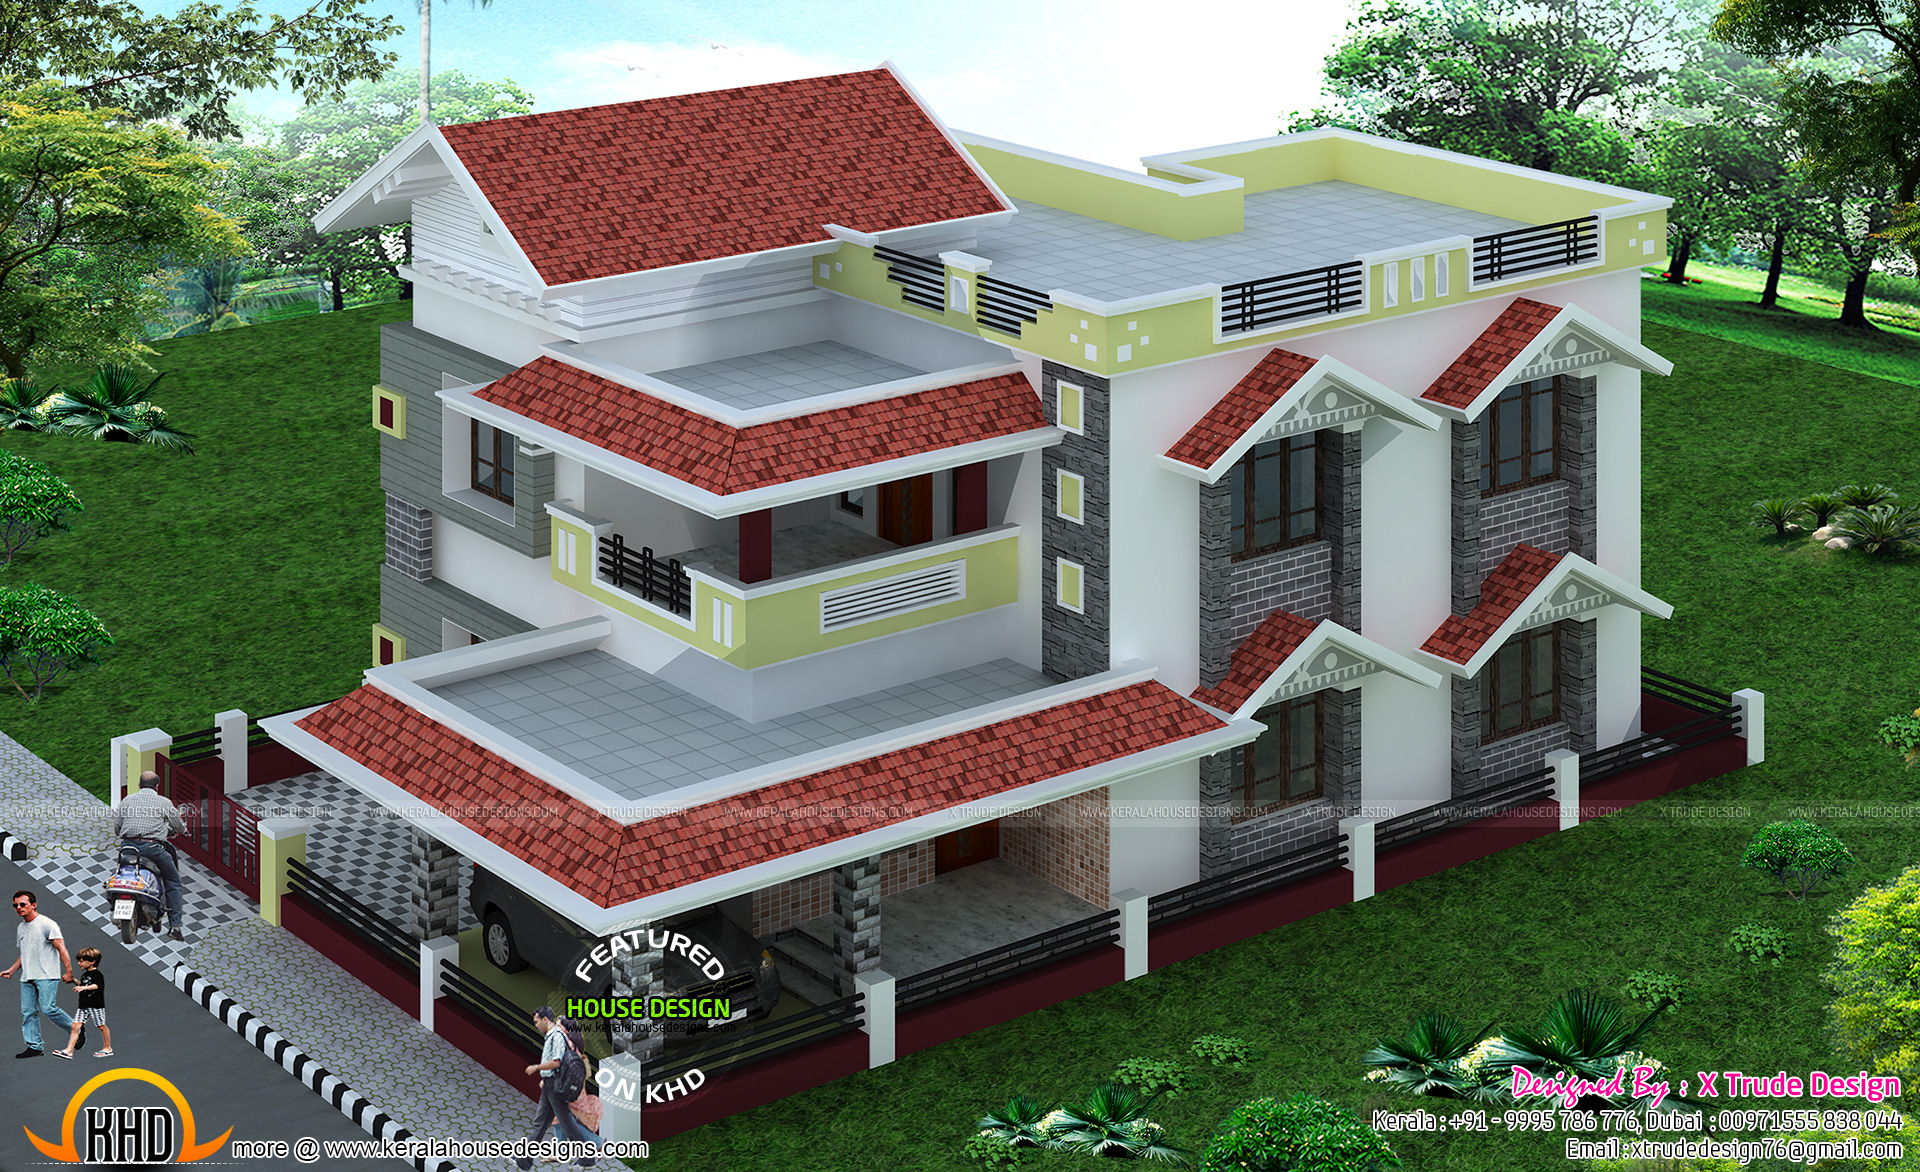 2581 sq ft house by x trude design kerala home design for Best house designs indian style